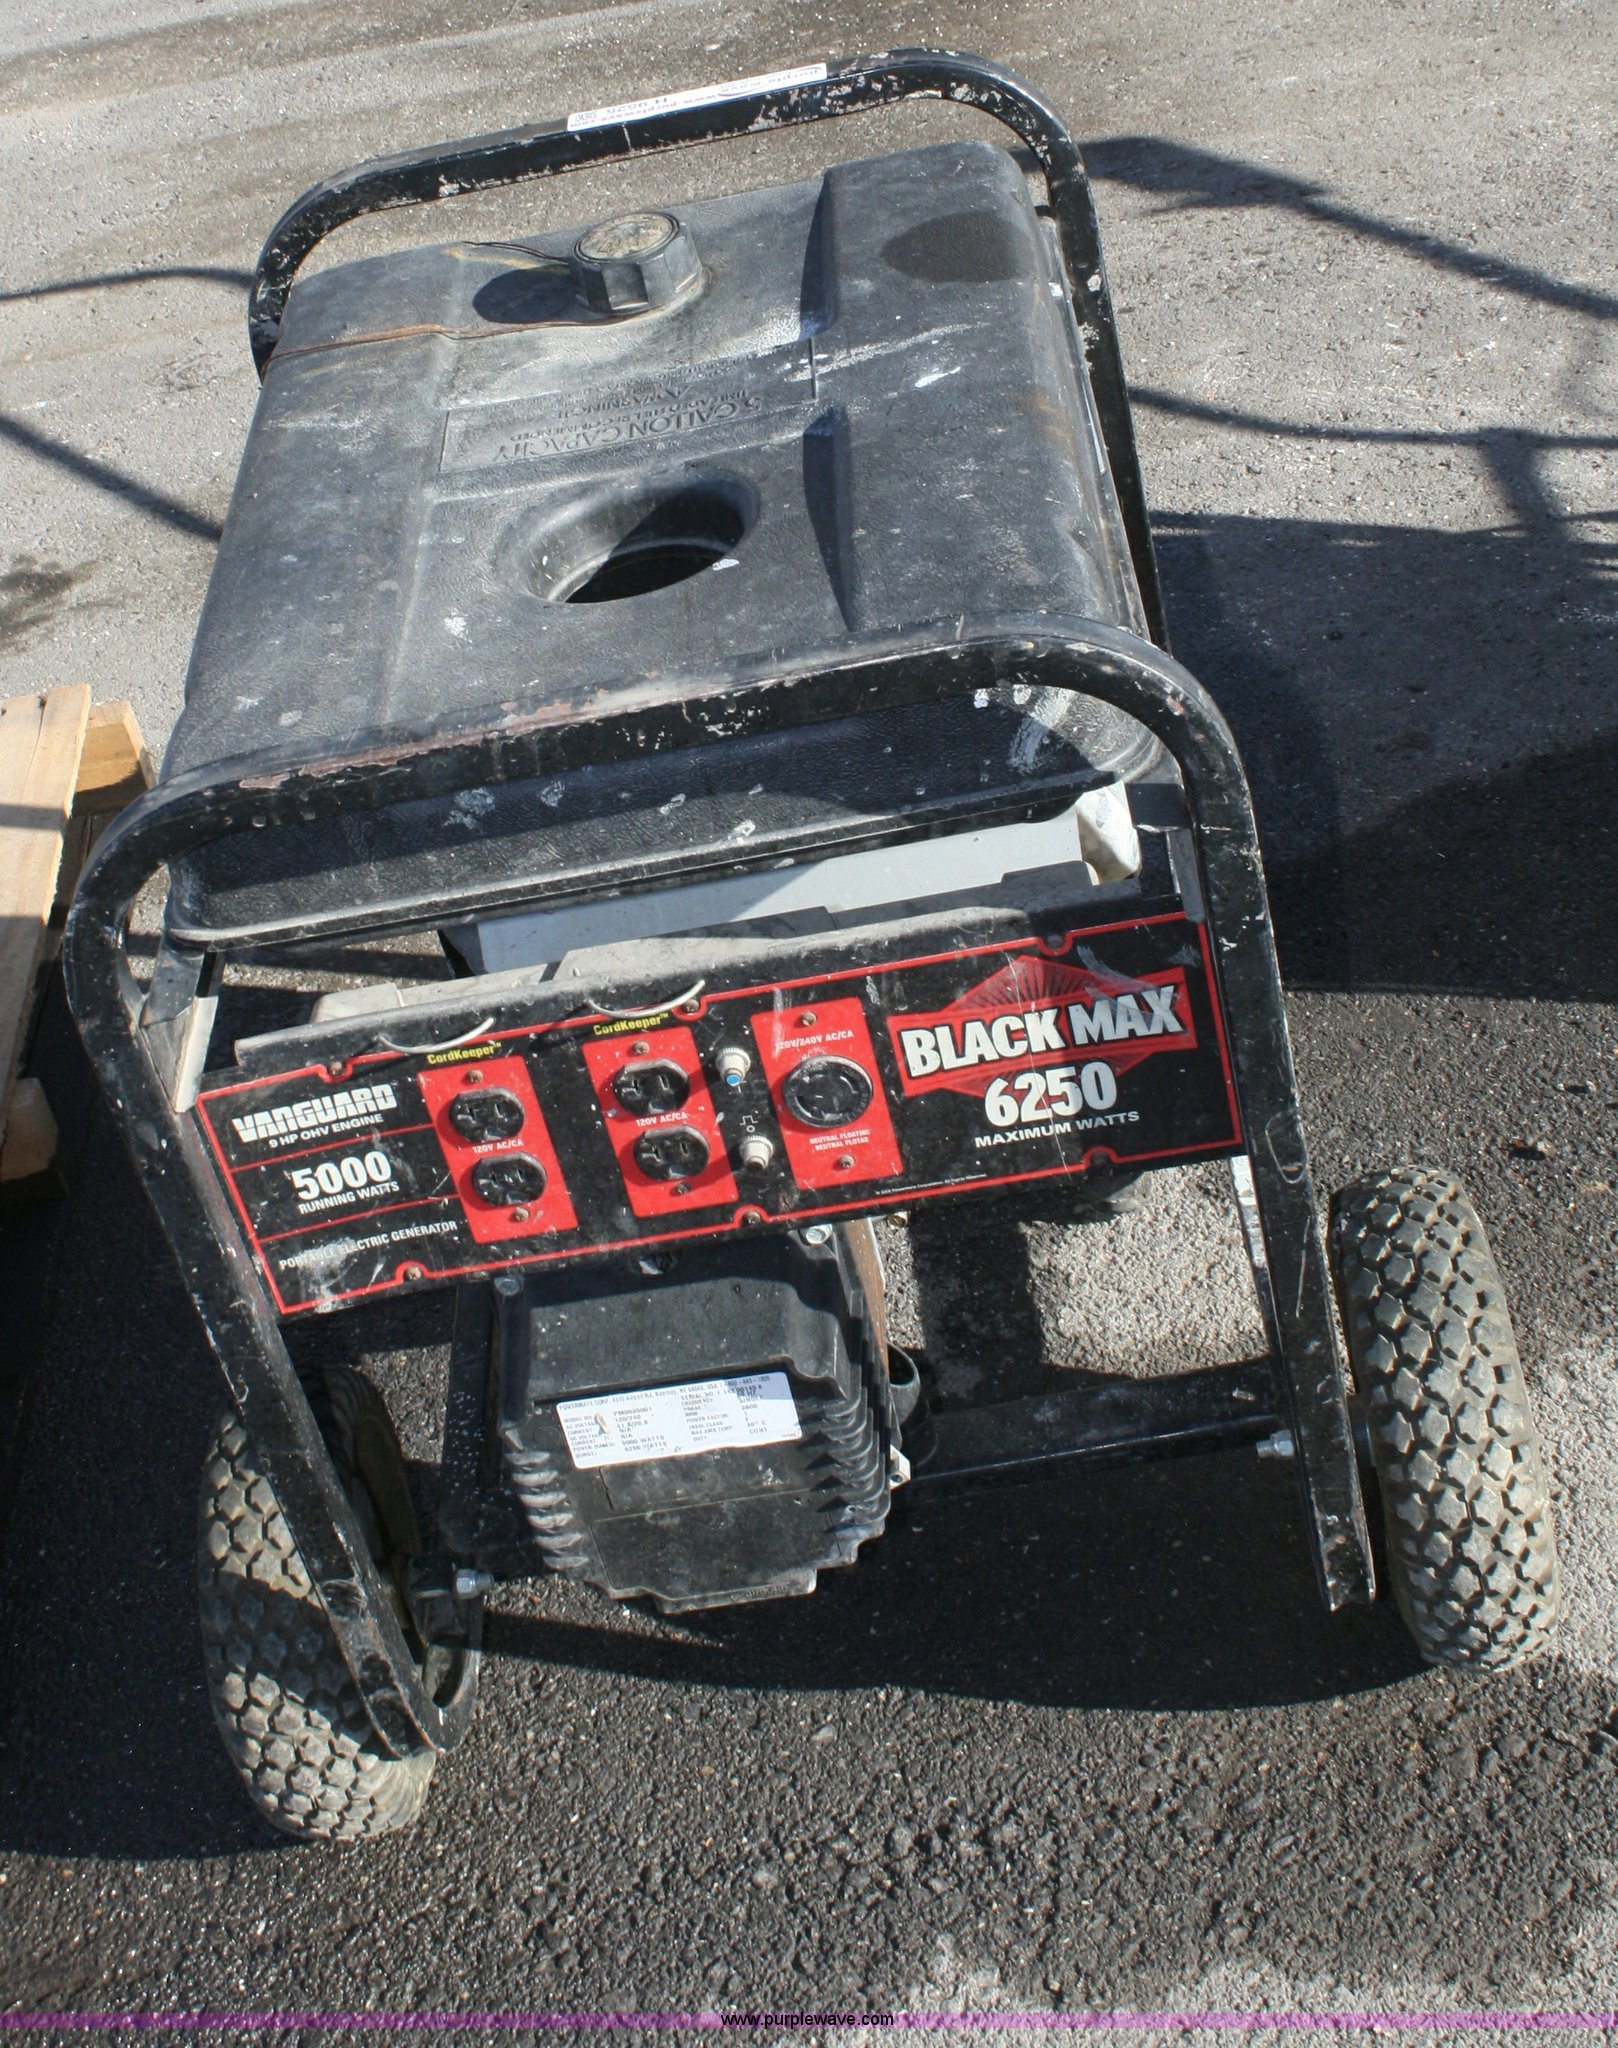 Blackmax 6250 generator | Item H9525 | SOLD! February 28 Con